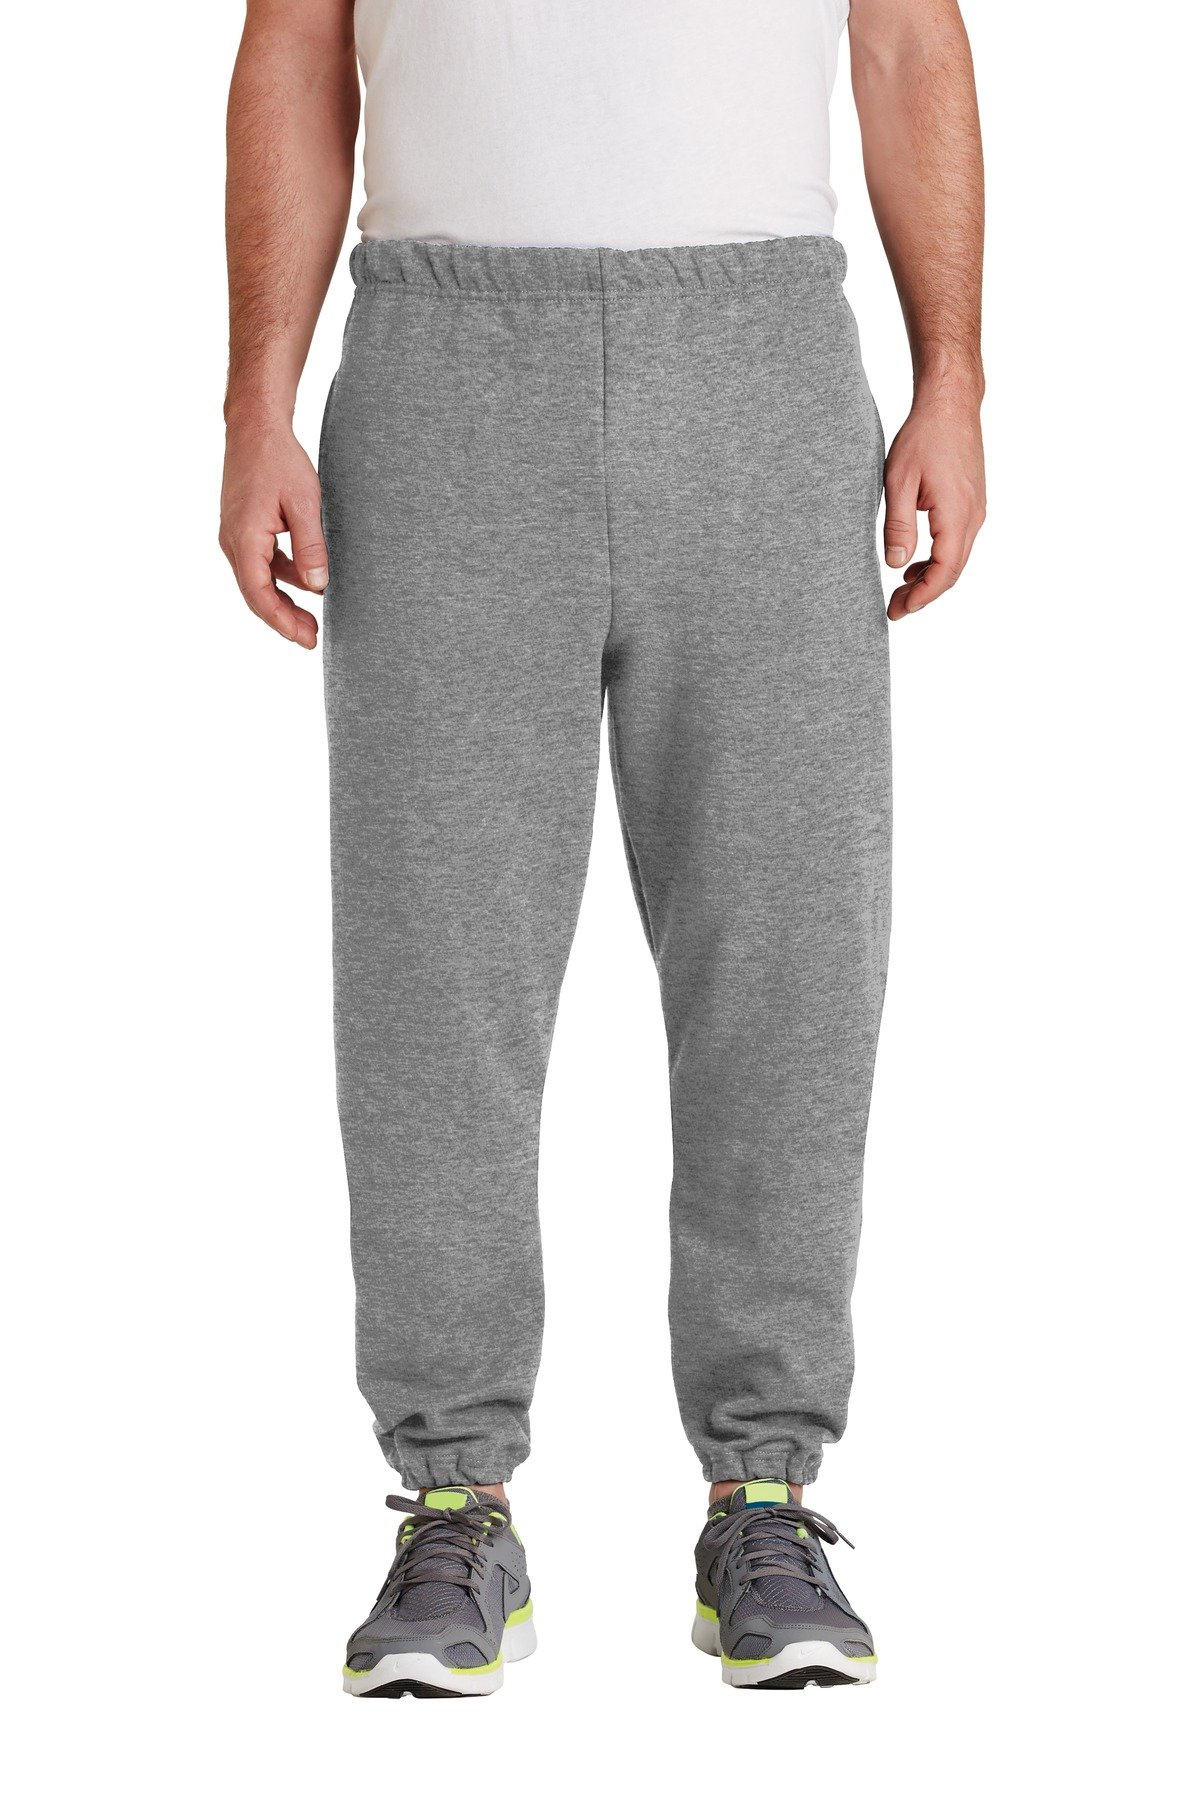 JERZEES SUPER SWEATS NuBlend - Sweatpant with Pockets.  4850MP